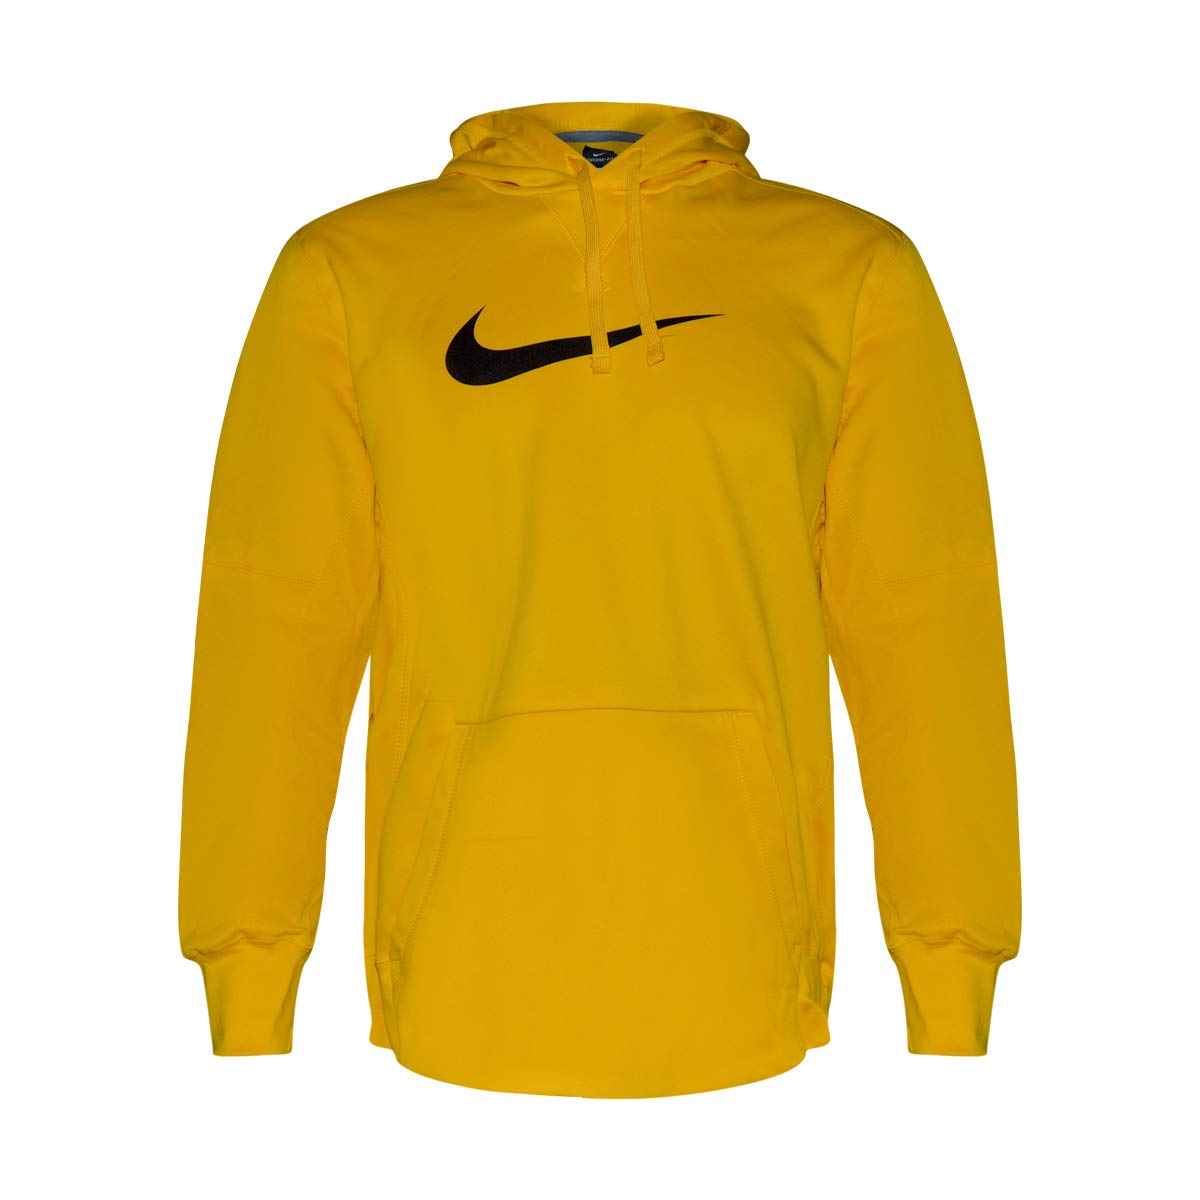 Nike Men's Therma-Fit Athletic Hoodie (Bright Yellow, XXL) by Nike